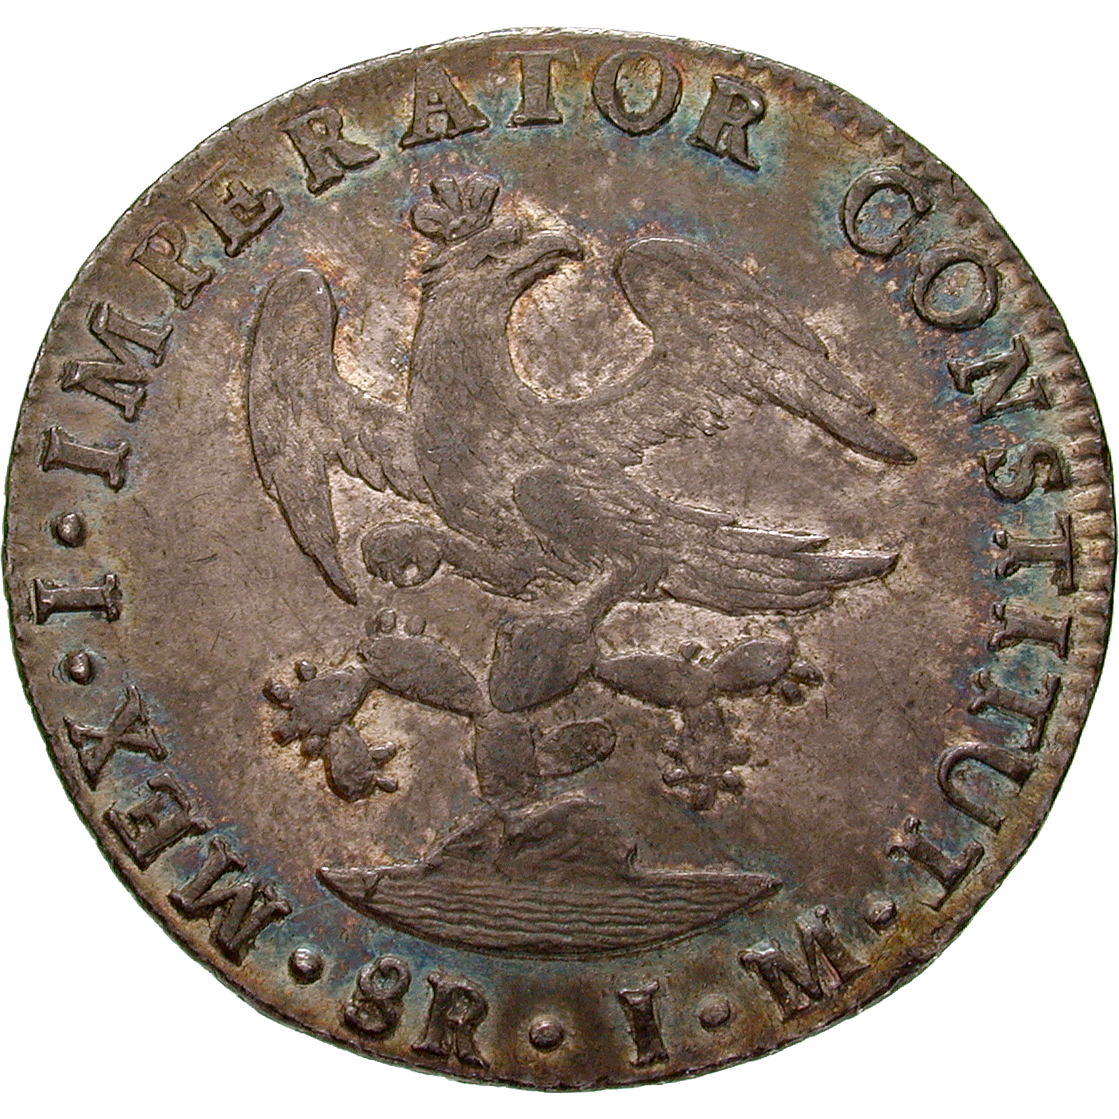 Empire of Mexico, Augustín I, Real de a ocho (Peso) 1823 (reverse)